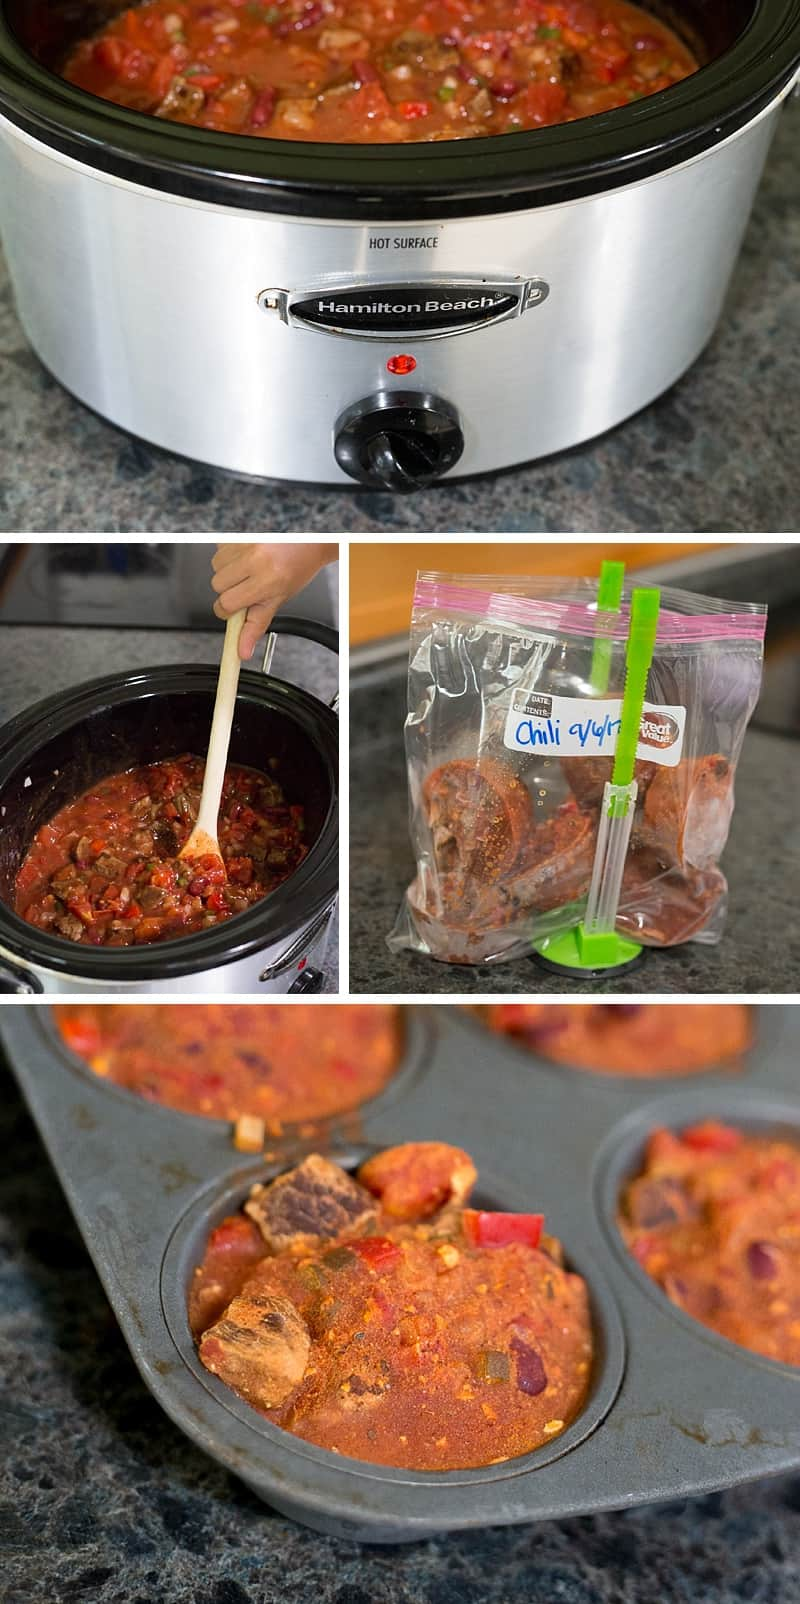 Best chili EVER! This slow cooker recipe is so SIMPLE to make and perfect for FREEZING into single sized servings. You can use ground beef, steak or go vegetarian. *This is one of my go-to dinners that the whole family loves. Perfect comfort food.